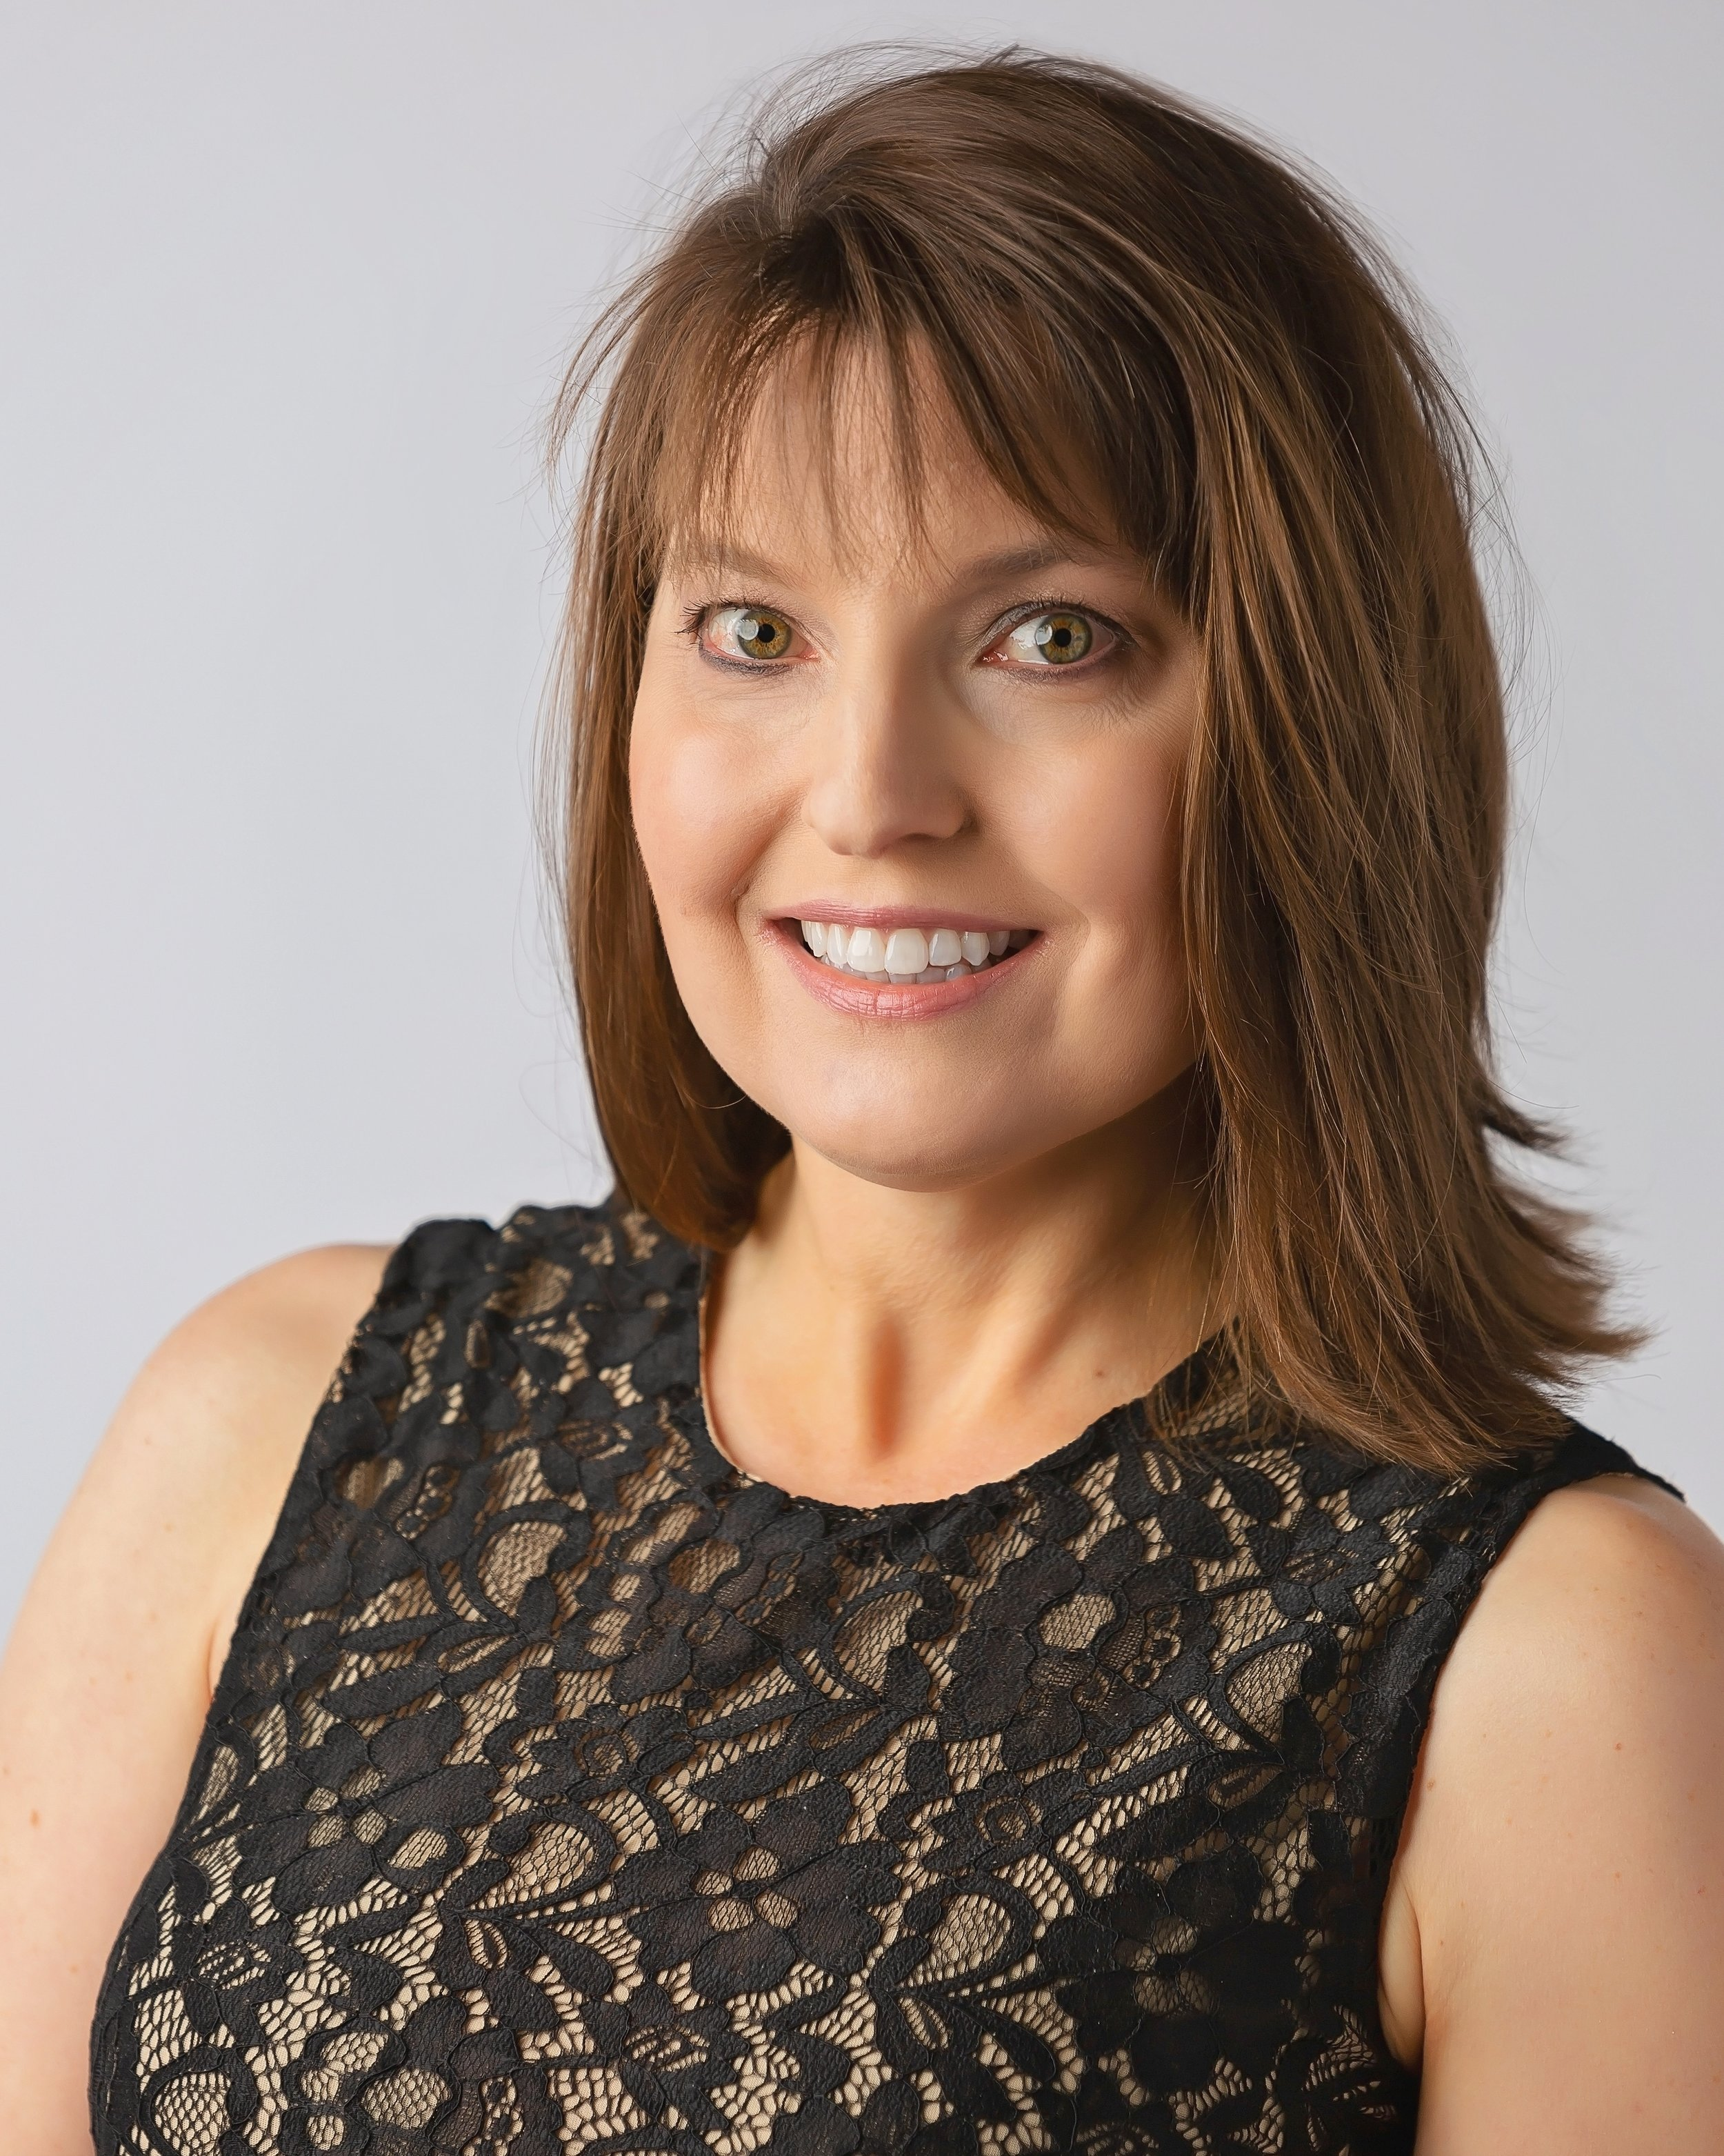 Devon Bollan - Sales Associate Lic #02080831Born and raised in Humboldt County, Devon brings integrity, professionalism, and a personable nature to Landmark Real Estate.With a genuine passion for Humboldt County and a dedication to her clients' success, Devon guides people through every step of the buying and selling process, taking a patient and enthusiastic approach to every transaction. For Devon, there's nothing more gratifying than helping her clients find their dream home and move on to an exciting new phase in their lives.Devon graduated from Humboldt State University with a Bachelor of Science Business Administration degree along with a concentration in Accounting. Prior to joining Landmark Real Estate, she worked as an Accountant as well as Director of Operations and Finance for a multi-million dollar real estate development and commercial investment brokerage. Devon has an 18 year background in real estate personally as a developer, investor, and designer. Alongside her husband who owns a local general construction company, Devon has gained extensive experience in all aspects of construction managing residential and commercial real estate transactions from inception to completion. Her unique experiences and skill set allows her to connect with people of all ages and backgrounds, and she takes pride in introducing her clients to the communities and lifestyle that Humboldt has to offer.Once a USTA junior tennis player, Devon values health and wellness. When she's not assisting clients, Devon loves to spend time with her family, friends, husband and their pets. She also enjoys playing tennis, gardening, and traveling. She supports several local Humboldt charities. Please give Devon a call for all your real estate needs!Member of Humboldt Association of RealtorsMember of California and National Association of RealtorsOffice Phone: (707) 725-2852 Ext. 115Cell Phone: (707) 496-0726Fax: (707) 725-4052devon.bollan.landmarkrealestate@gmail.com